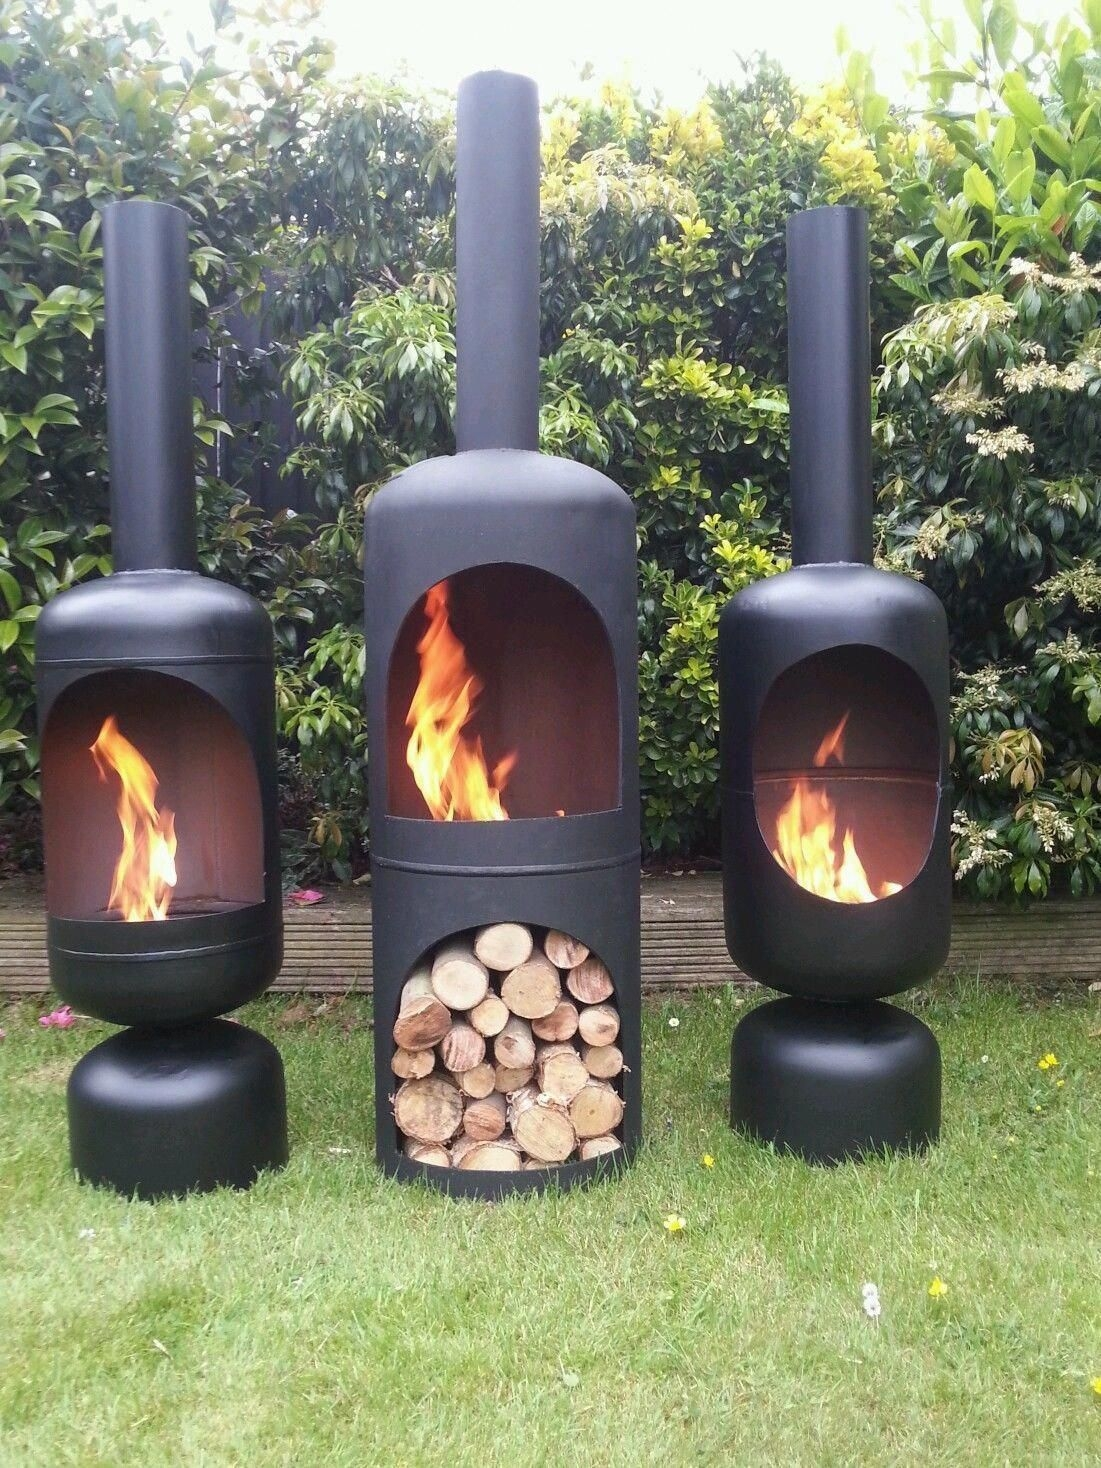 Gas Bottle Wood Log Burner Chiminea Camping Fishing Yurt Fire Pit